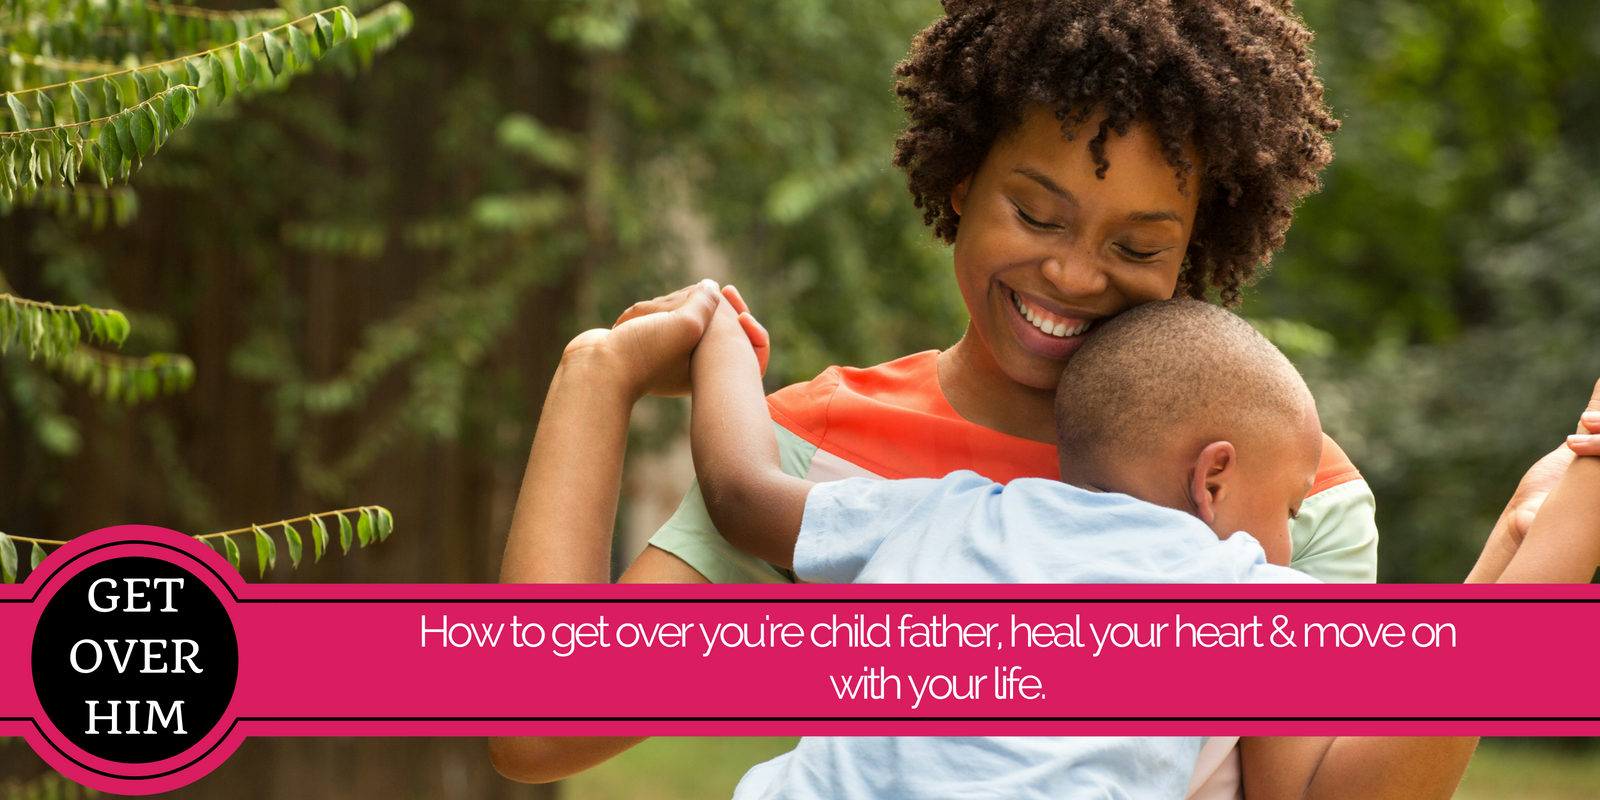 How to get over you're child father, heal your heart & move on with your life.